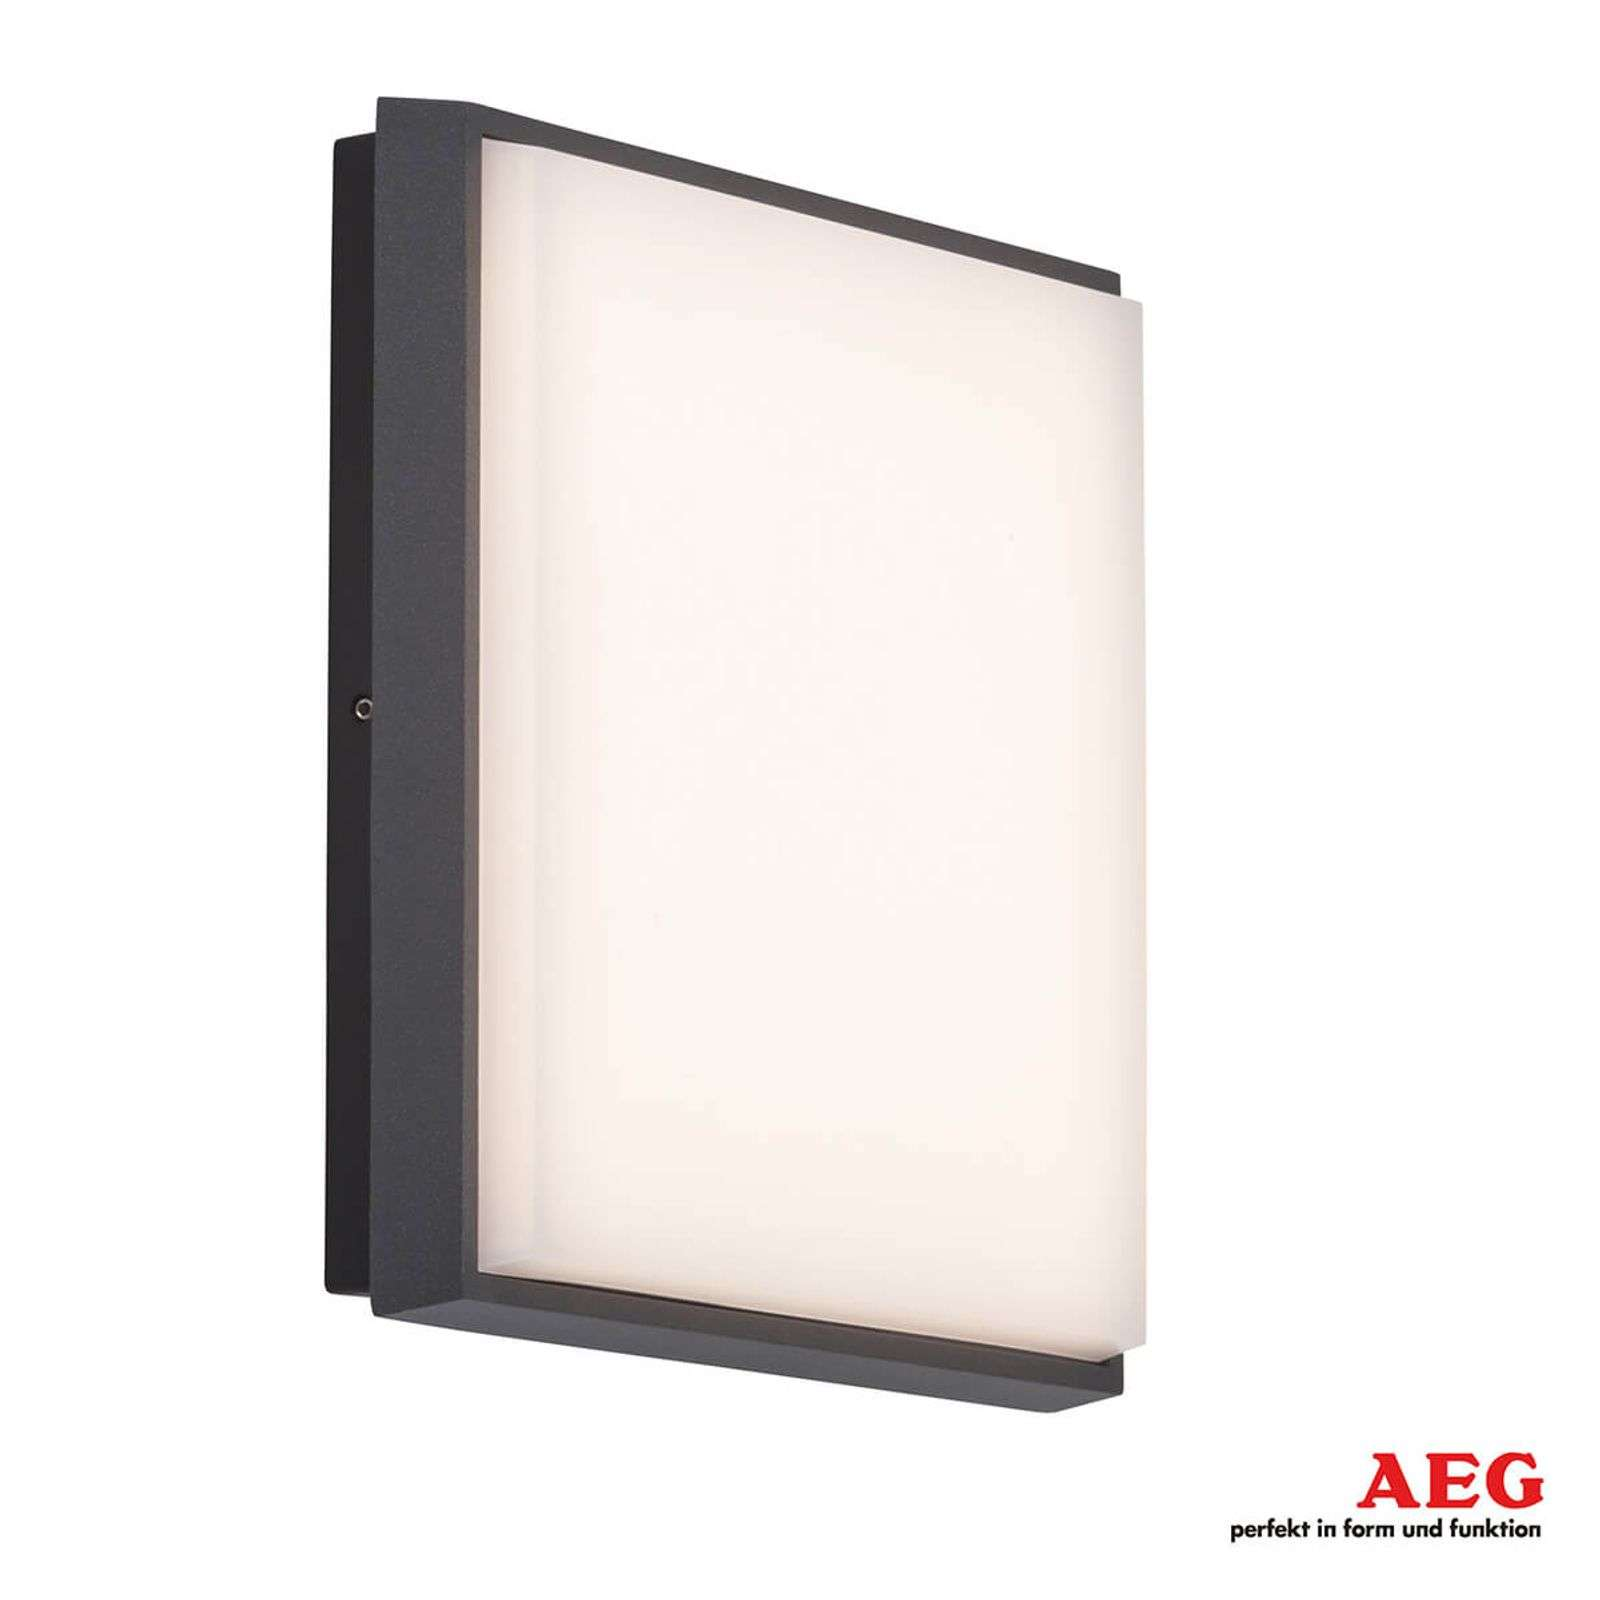 Potente applique da esterni LED Letan Square 23 W